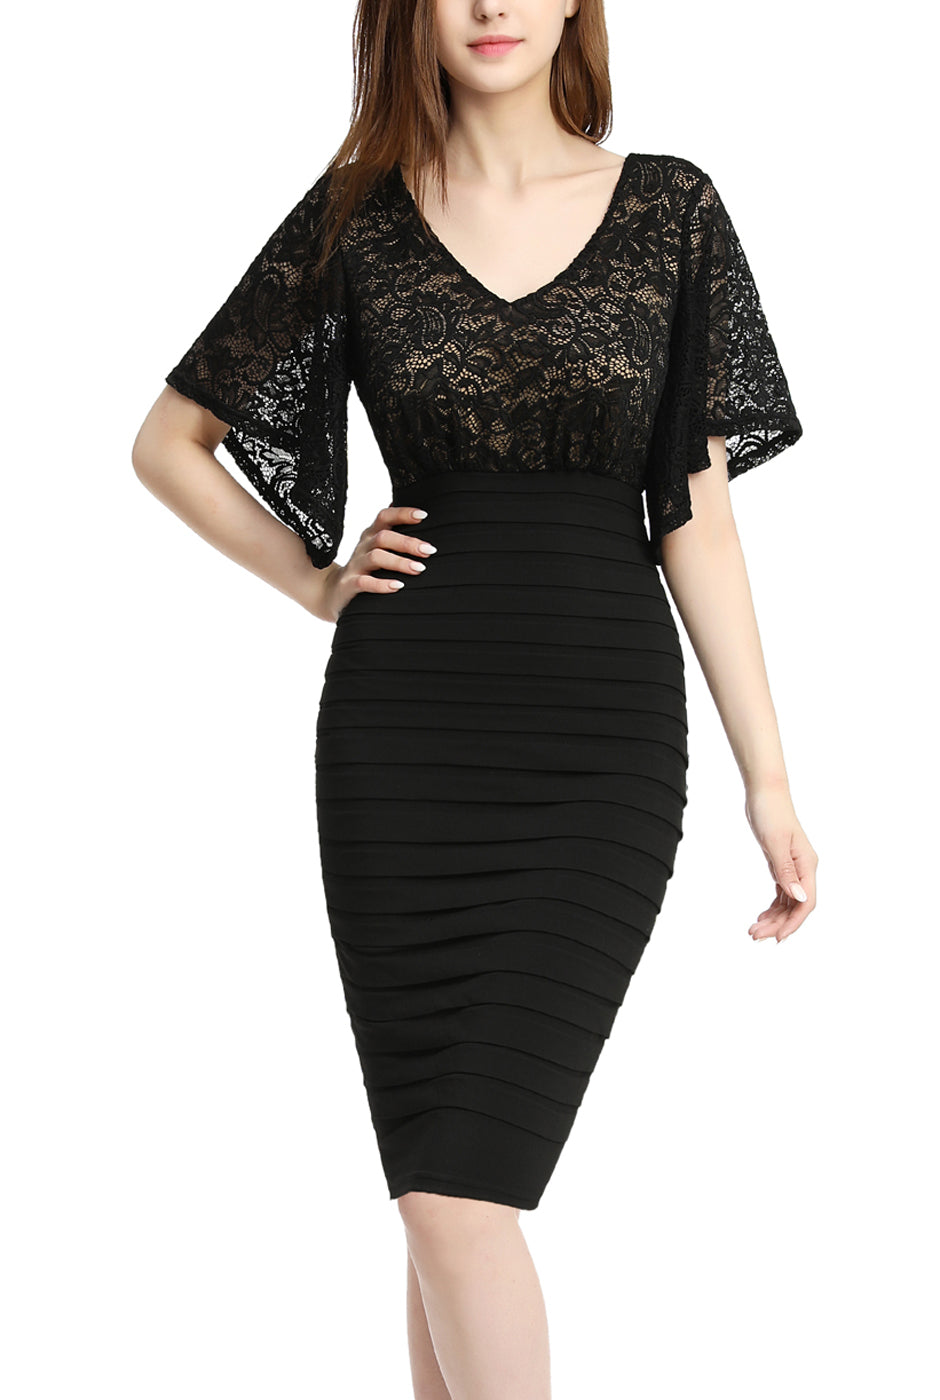 PHISTIC Women's Flutter Sleeve Lace Sheath Dress (Regular & Plus Size)